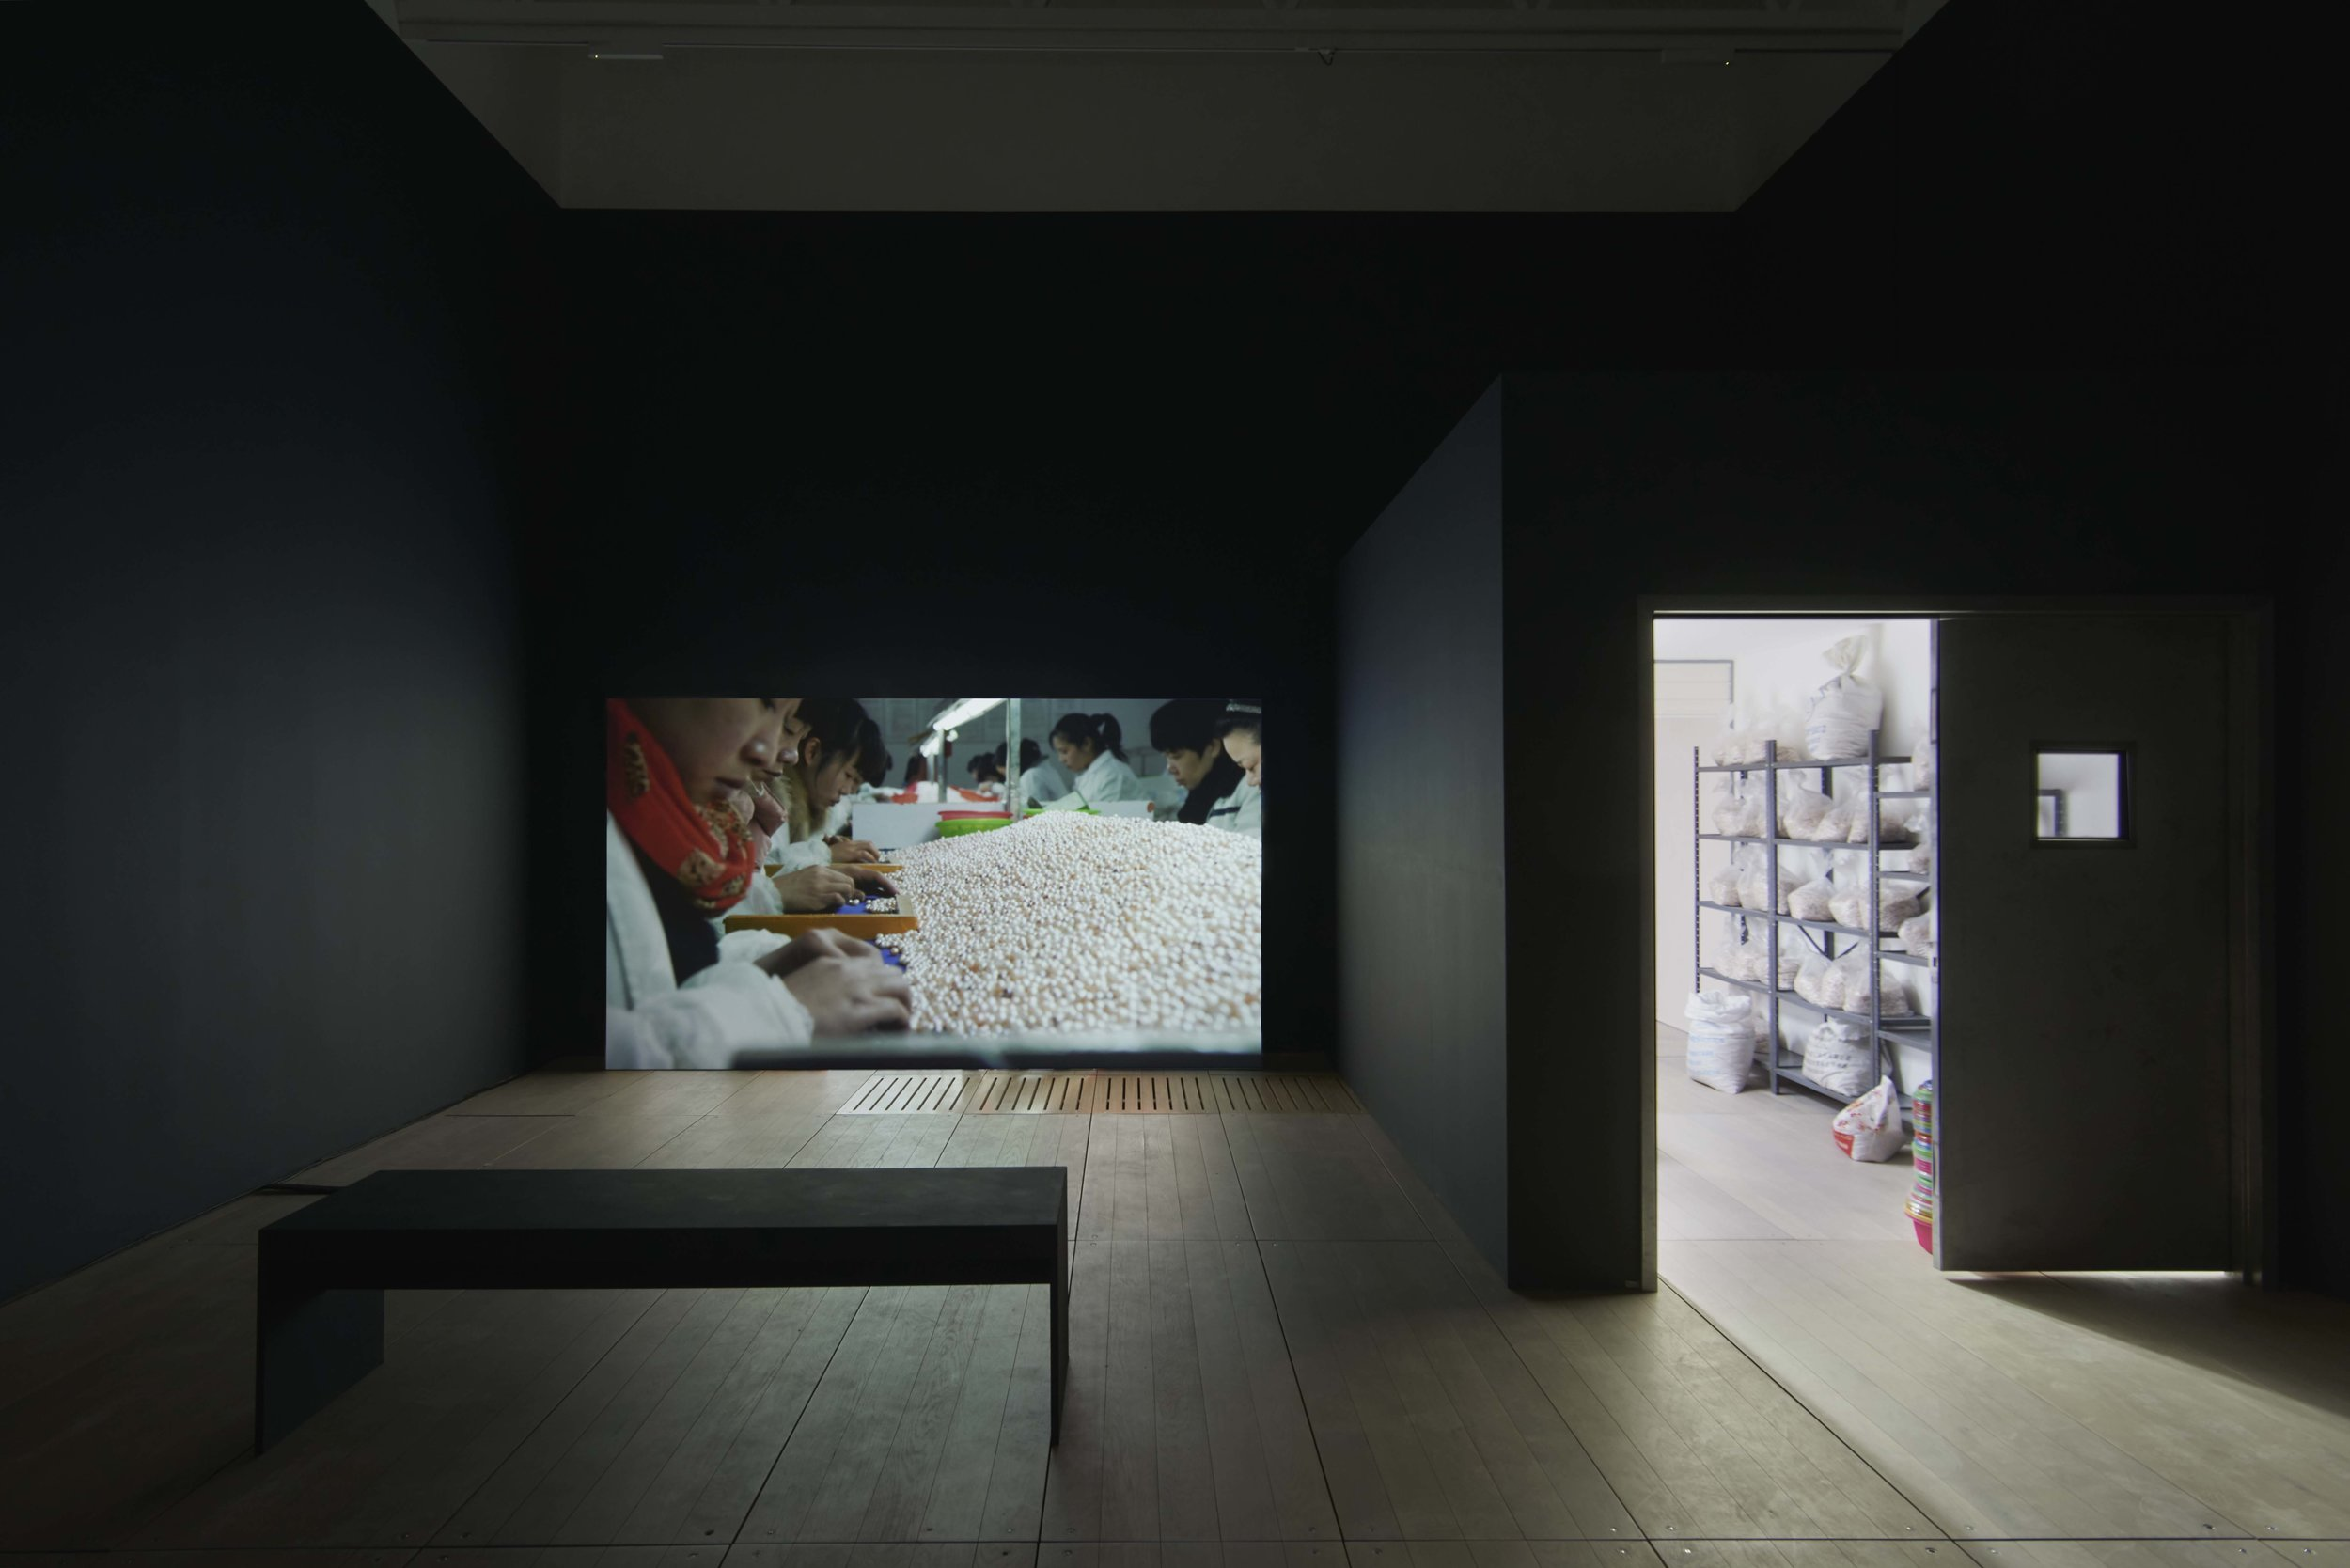 This image and above: Mika Rottenberg,  NoNoseKnows.  2015. Sculpture and video installation, 27:54, dimensions variable. Courtesy of the artist and the collection of Jill and Peter Kraus Installation view: Goldsmiths CCA, 2018. Image credit: Andy Keats, 2018